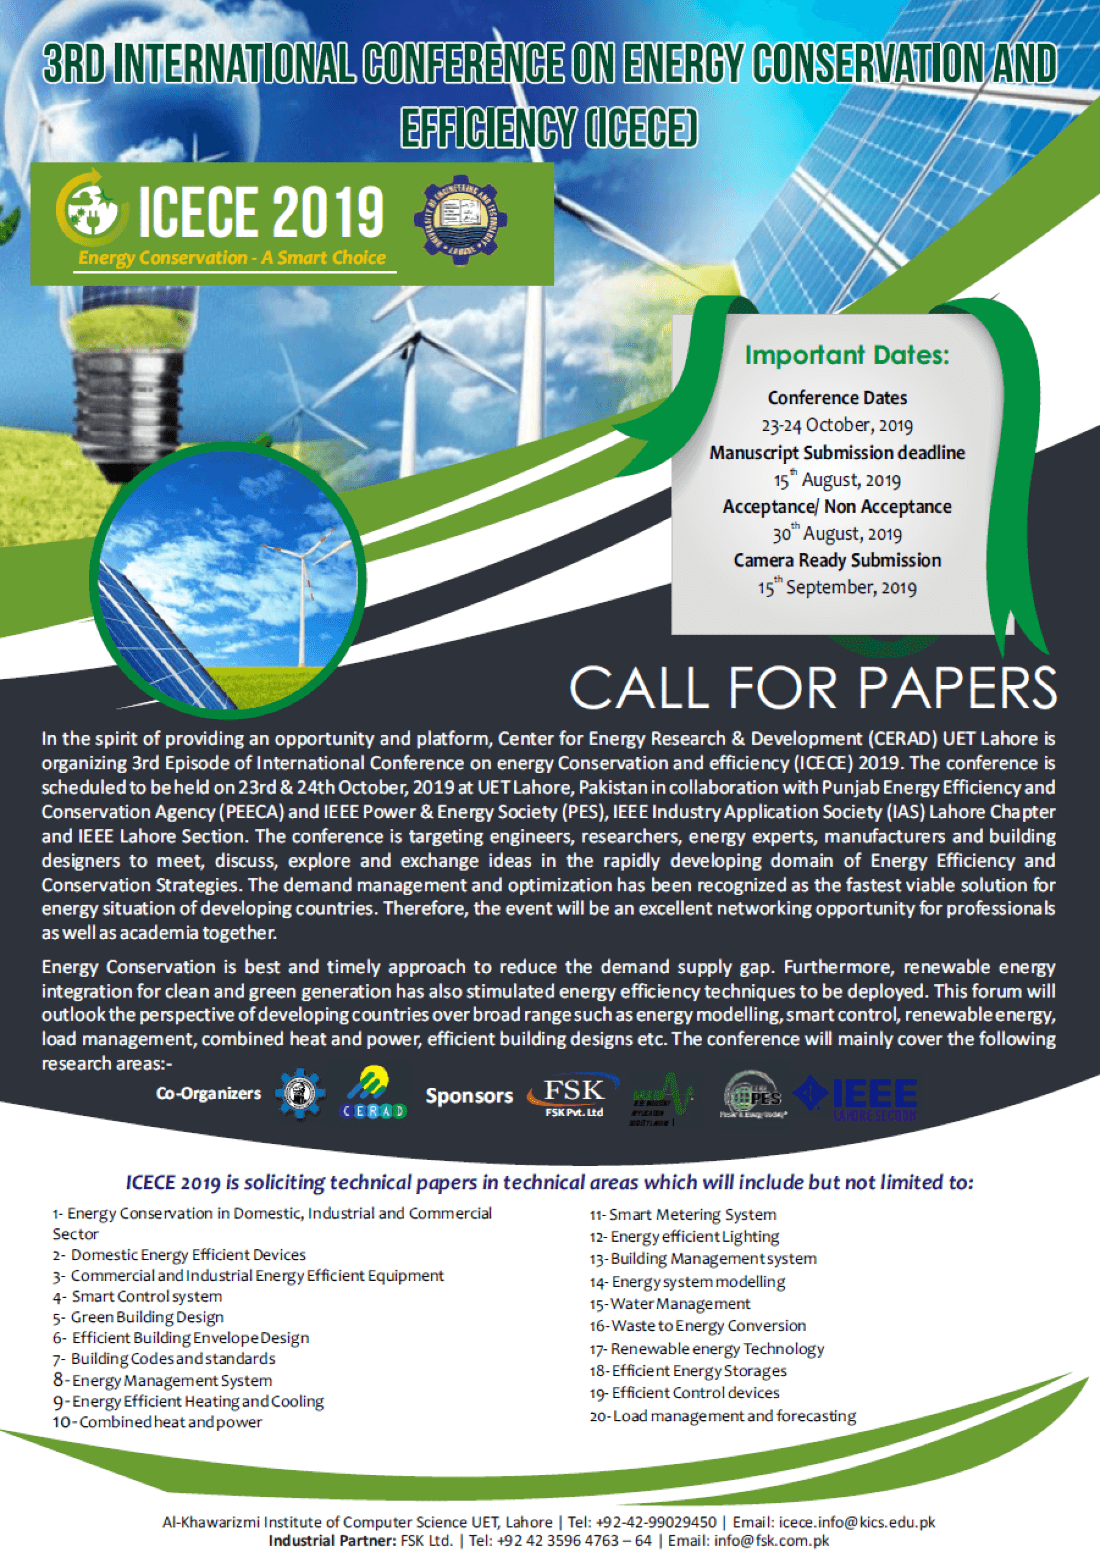 International Conference On Energy Conservation and Efficiency ICECE 2019 UET Lahore